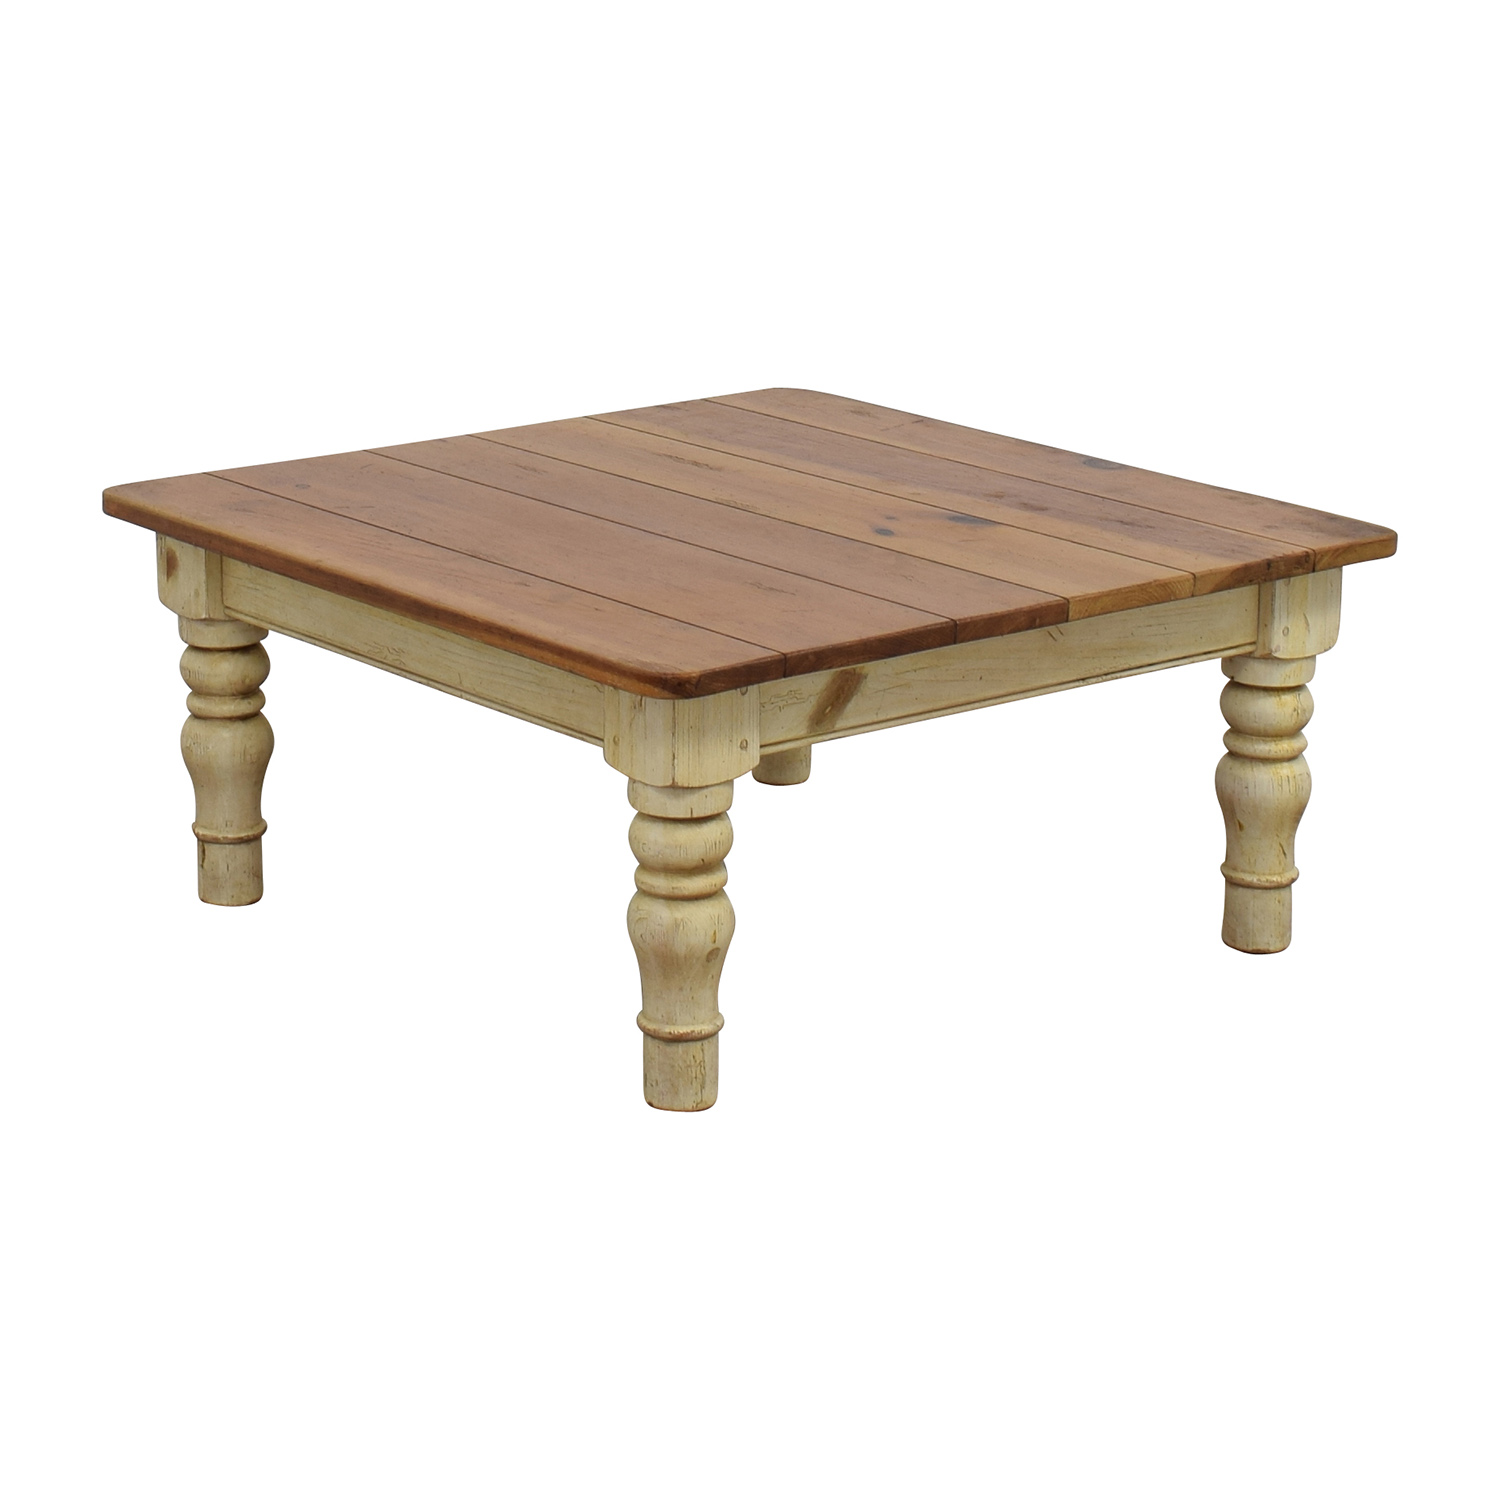 90 off ethan allen ethan allen farmhouse cherry wood coffee table tables Coffee table cherry